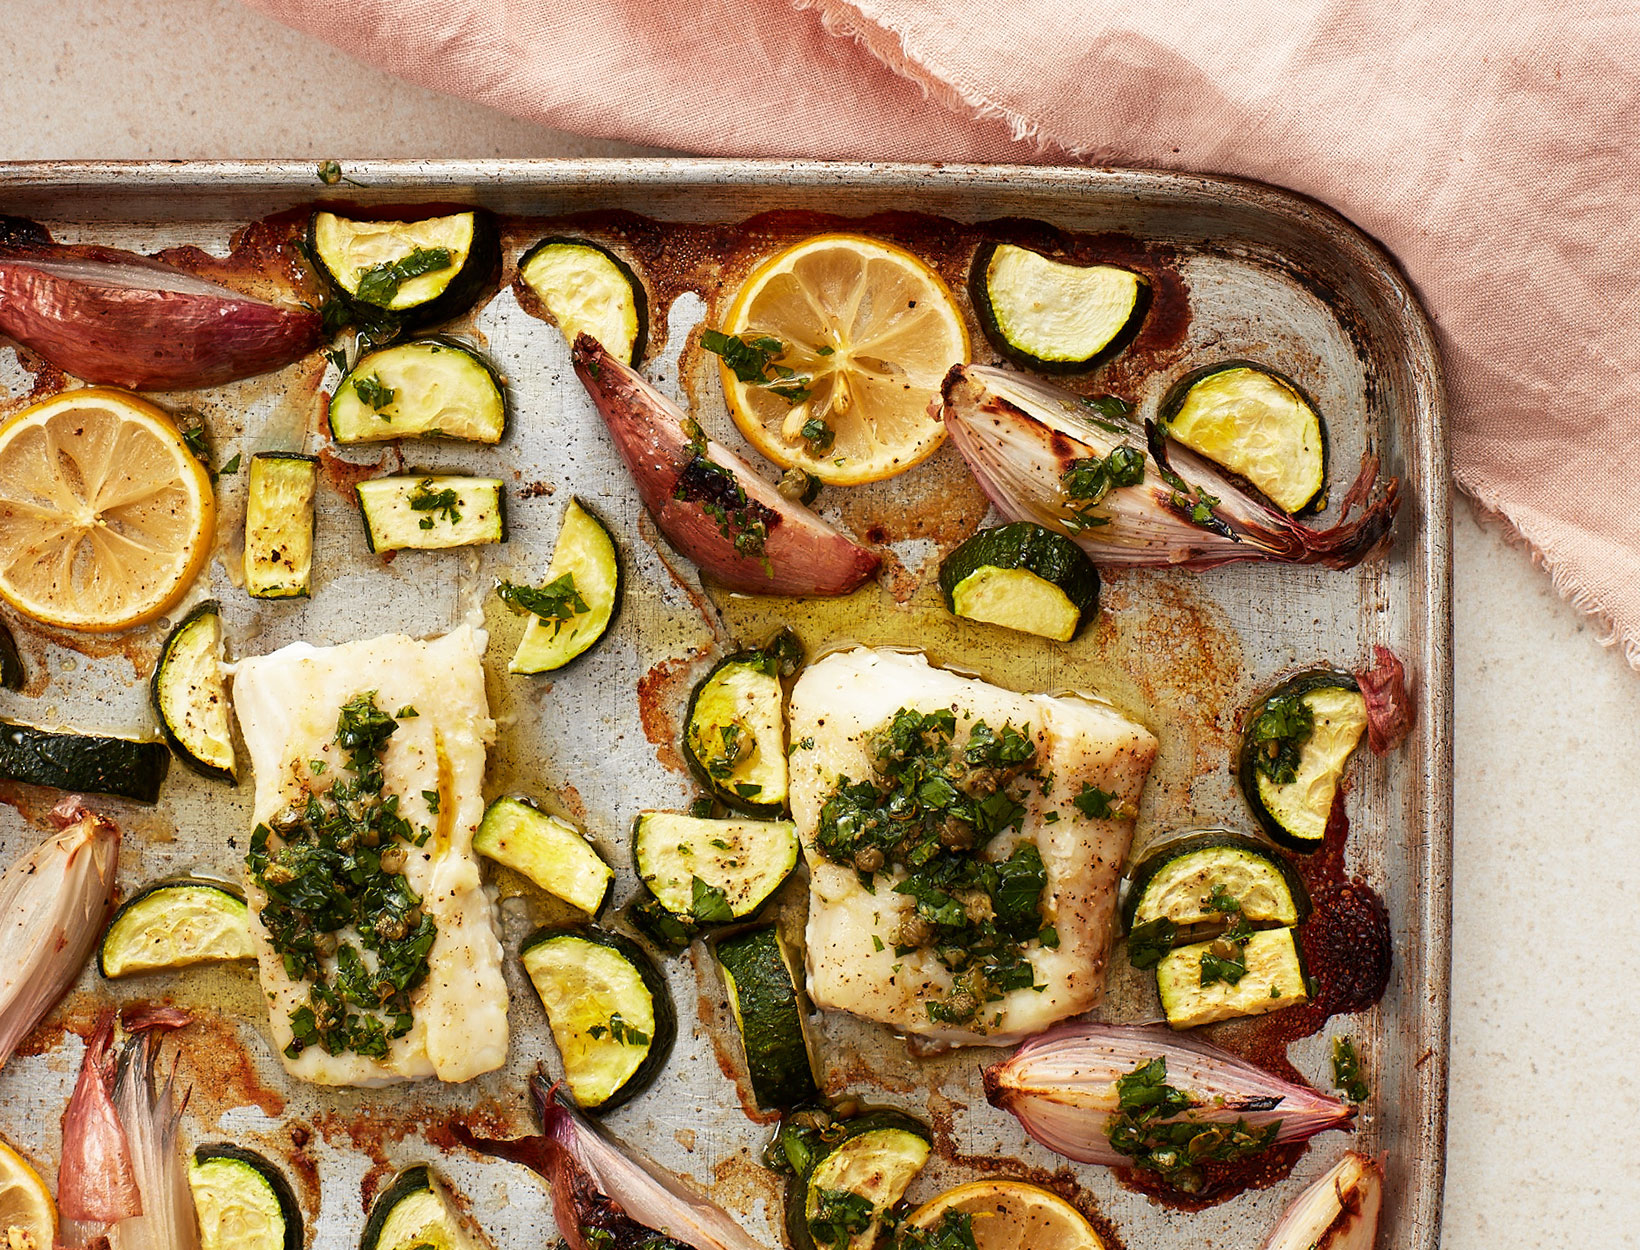 Sheet Pan Haddock with Zucchini, Shallot, and Salsa Verde